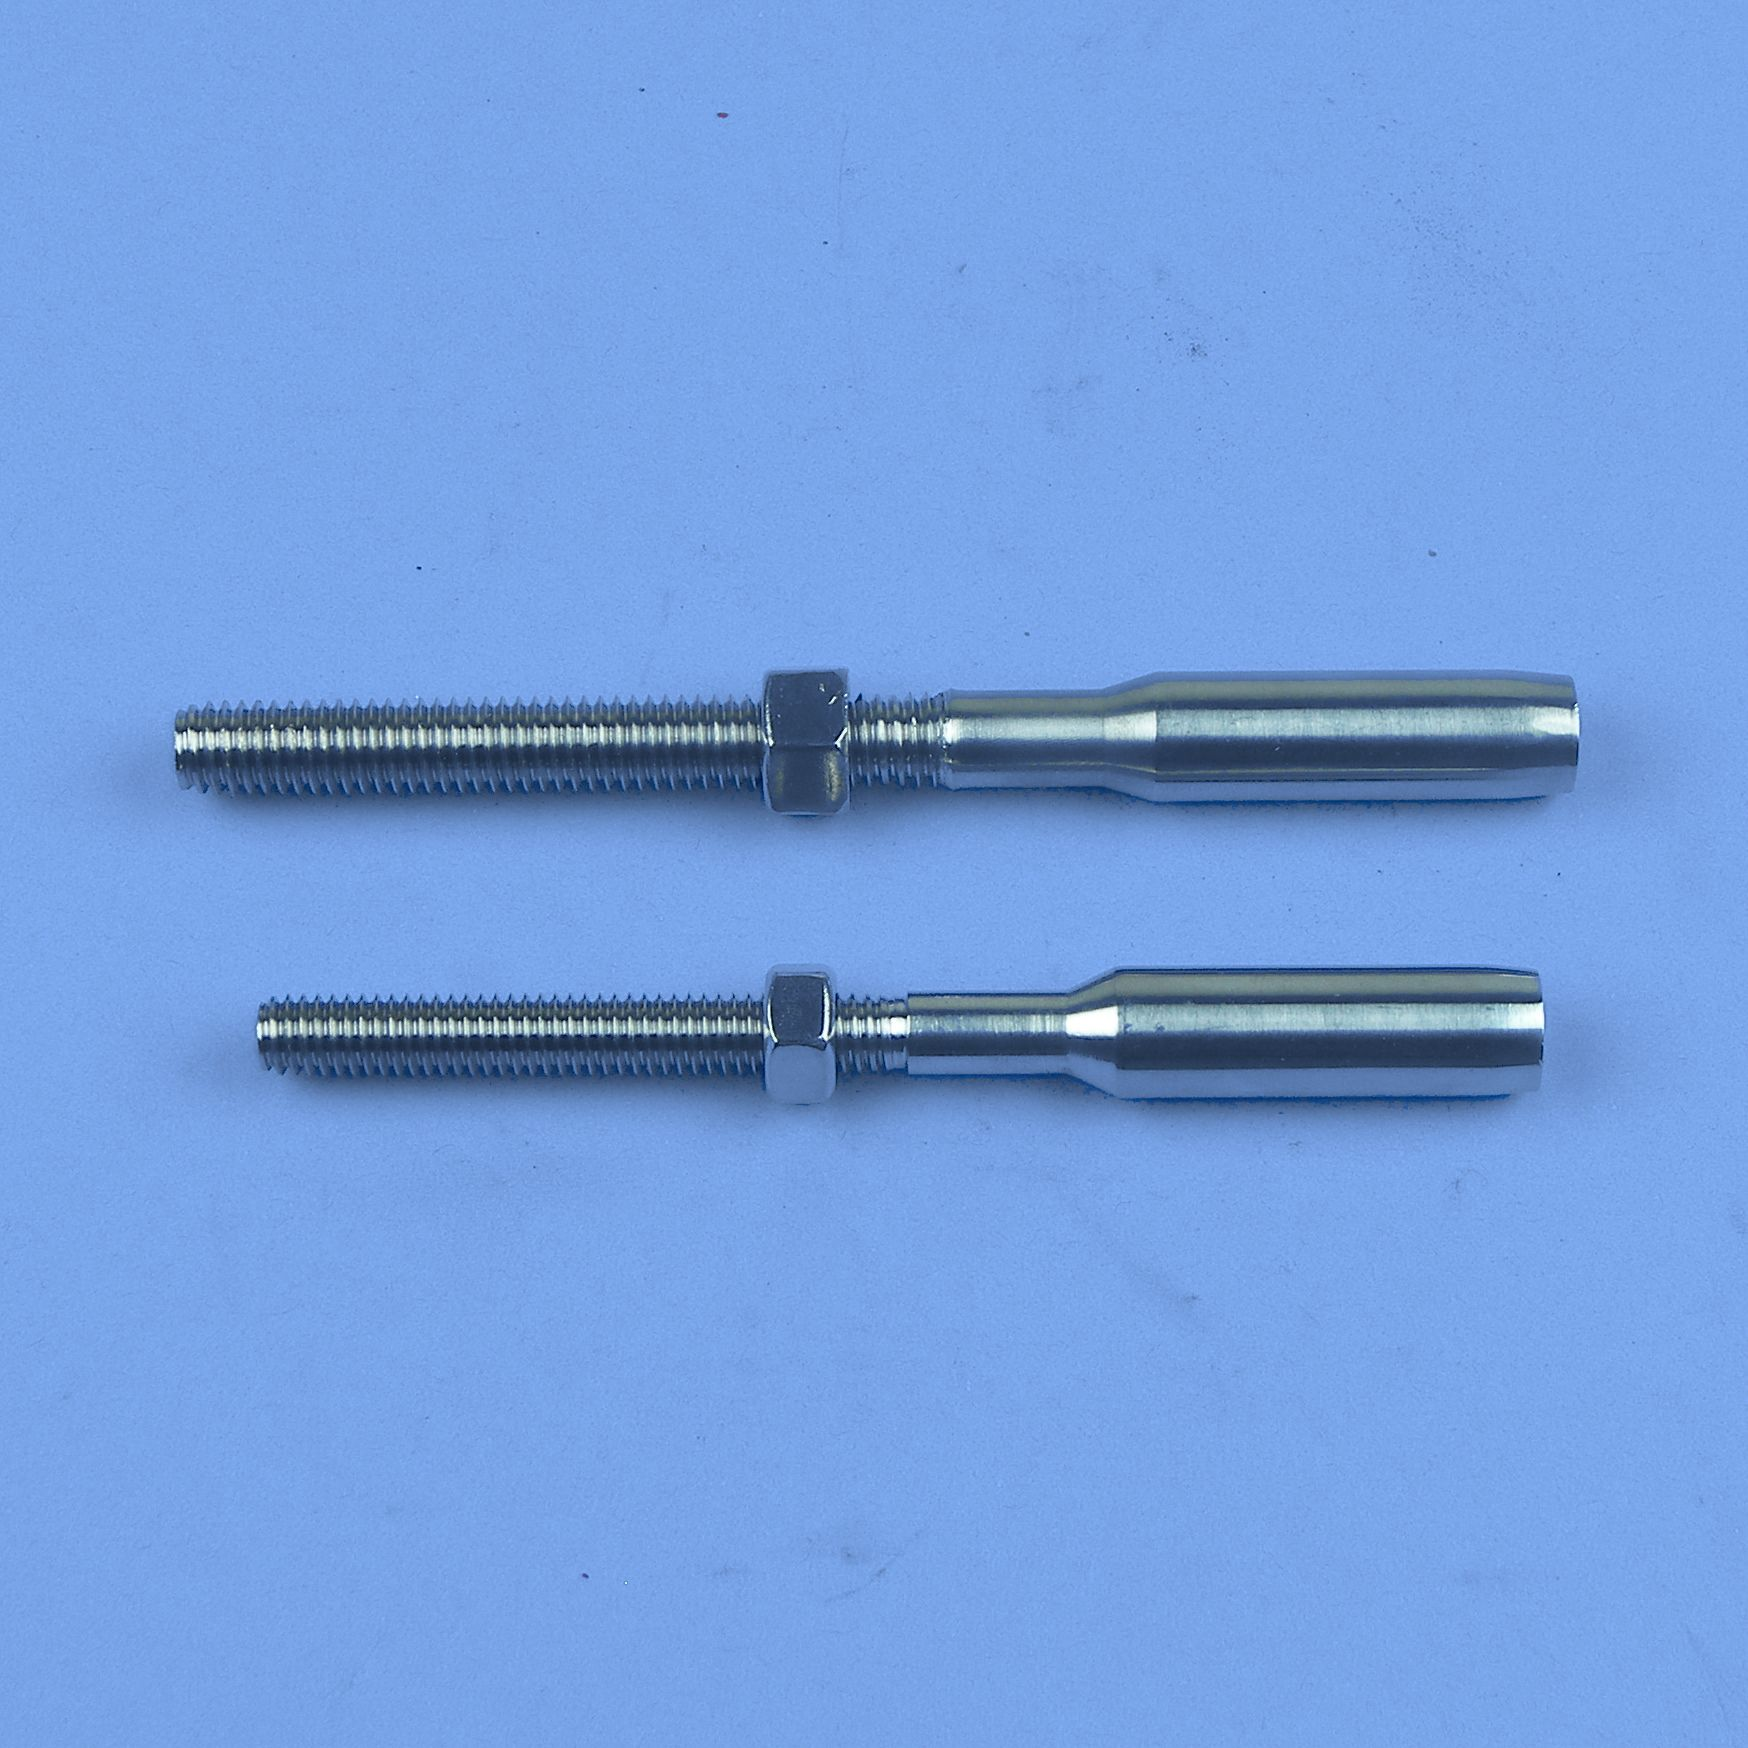 Steel Cable Swage : Safeland industrial supply inc stainless steel lifeline